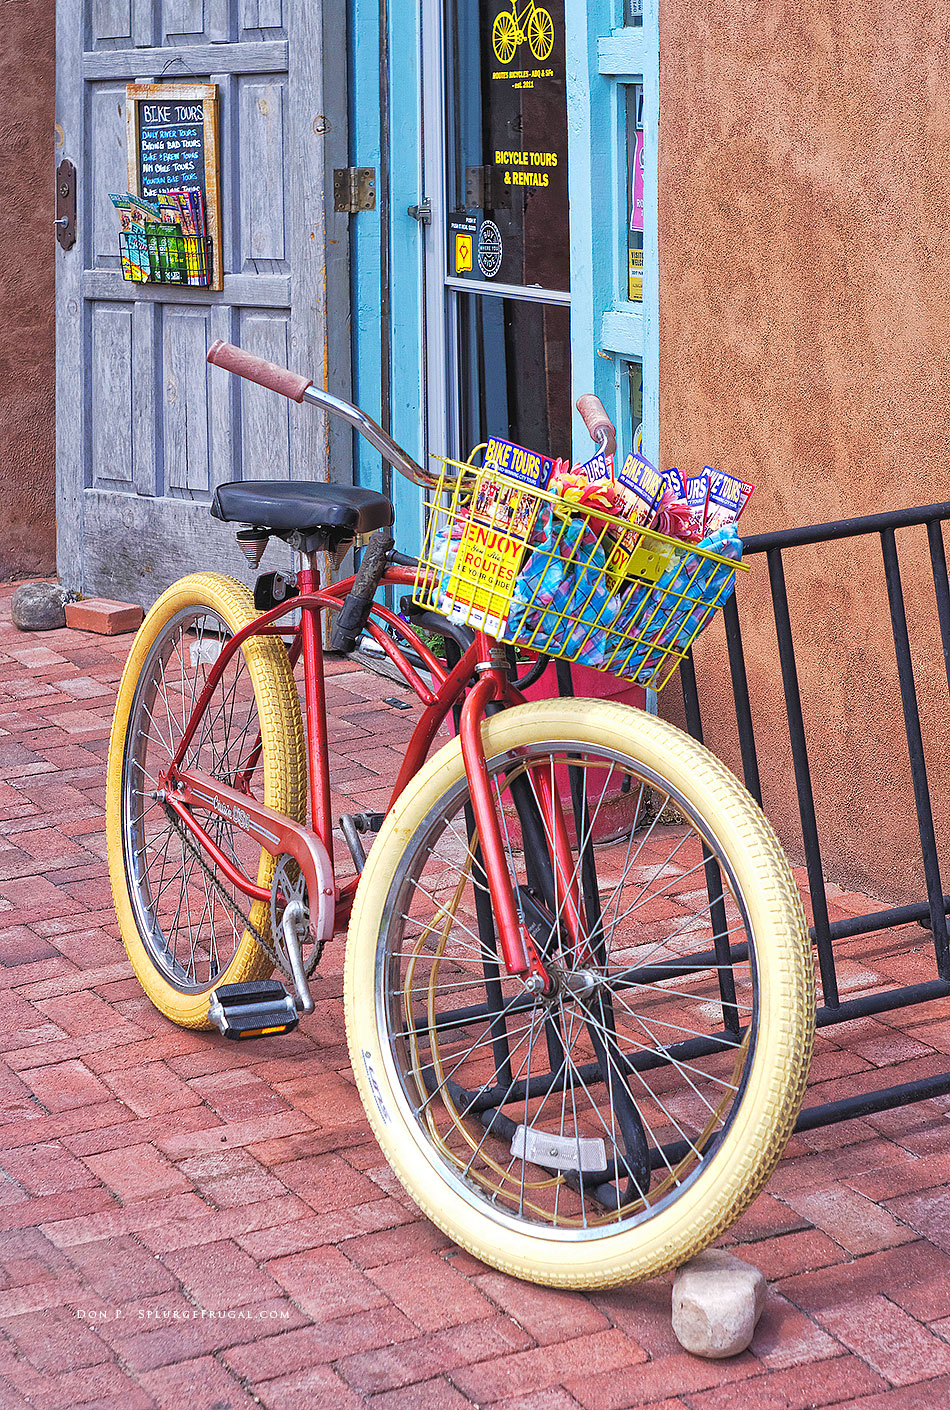 Tour Albuquerque by Bicycle!